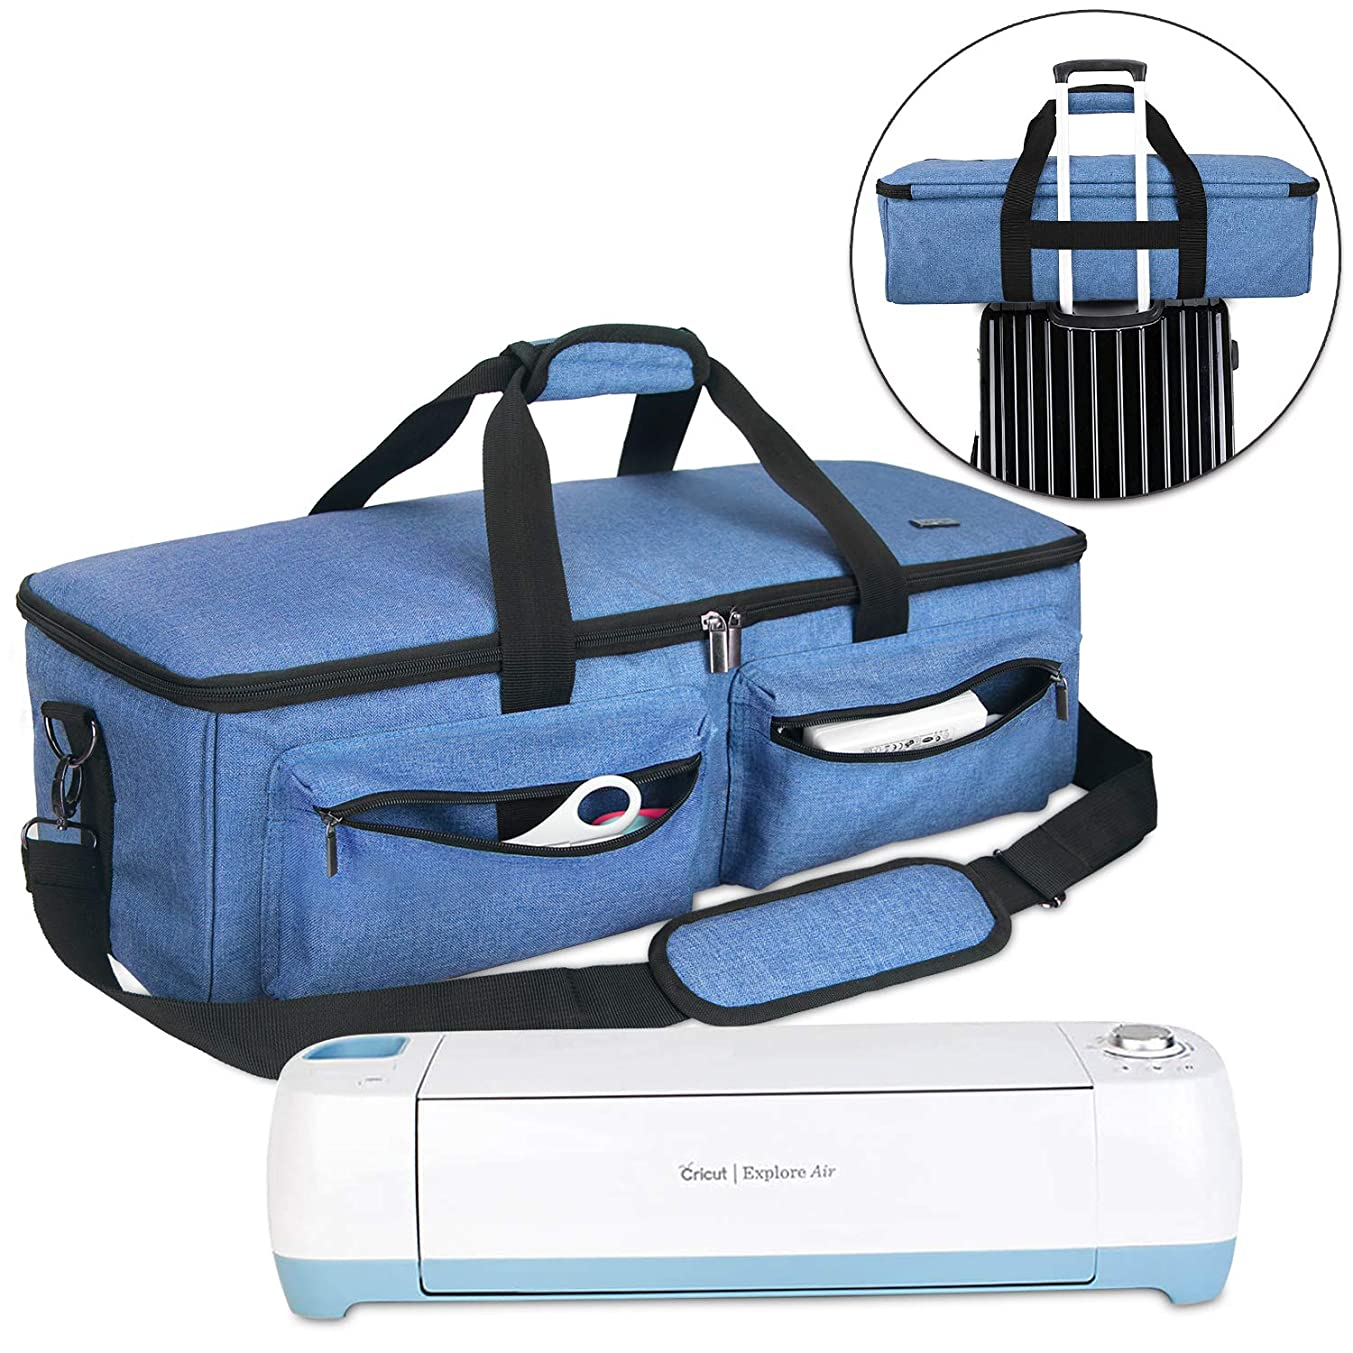 Luxja Carrying Bag Compatible with Cricut Explore Air and Maker, Tote Bag Compatible with Cricut Explore Air and Supplies (Bag Only, Patent Pending), Blue